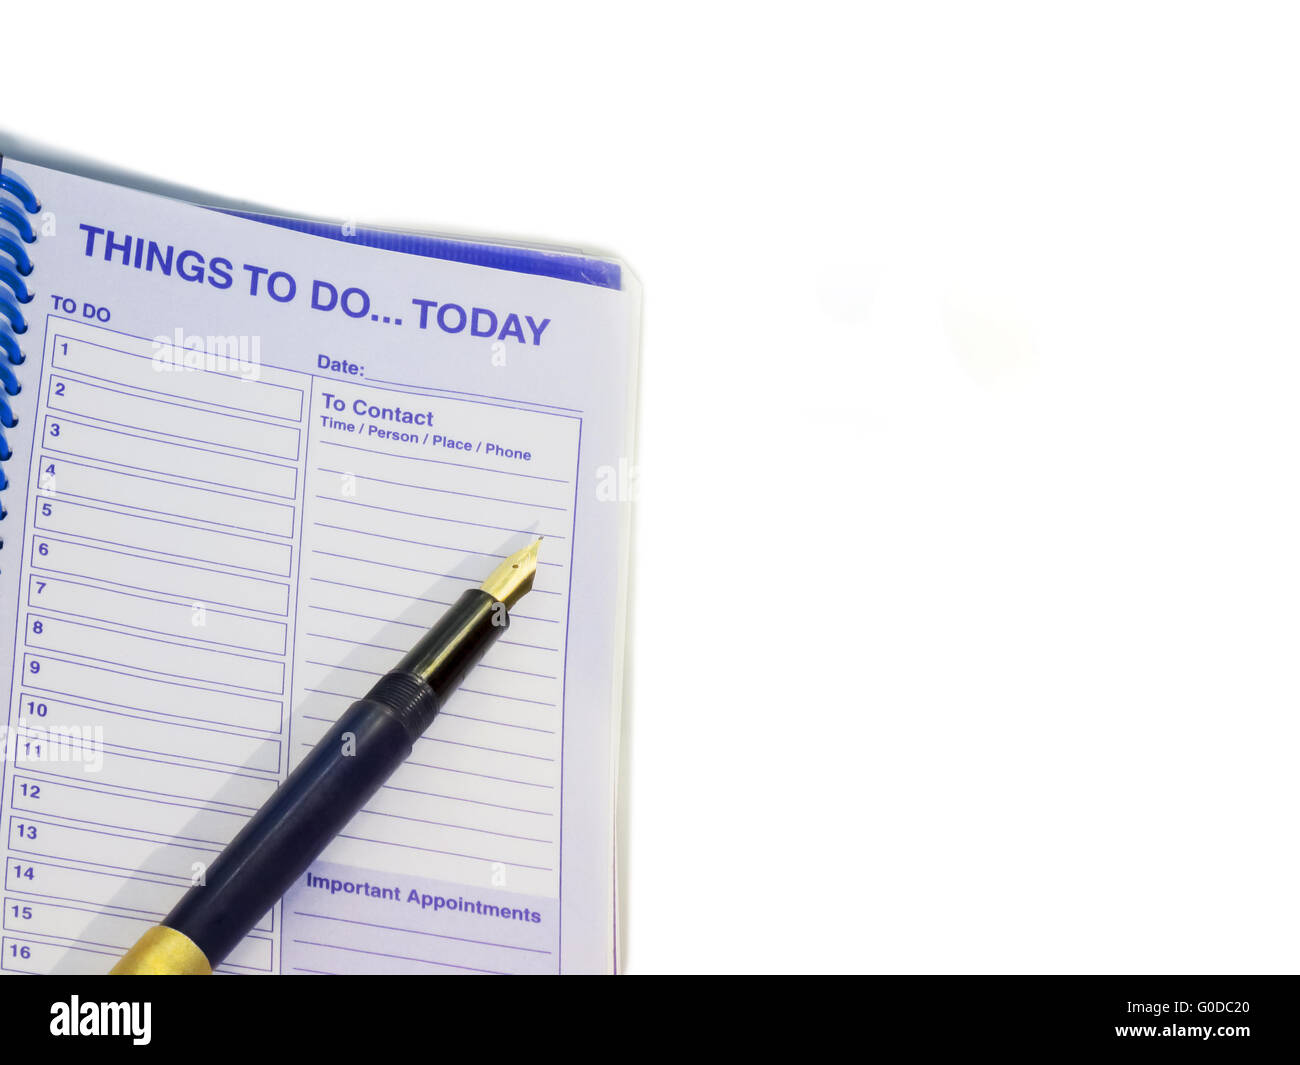 Things to do today...Pen and appointment notebook - Stock Image